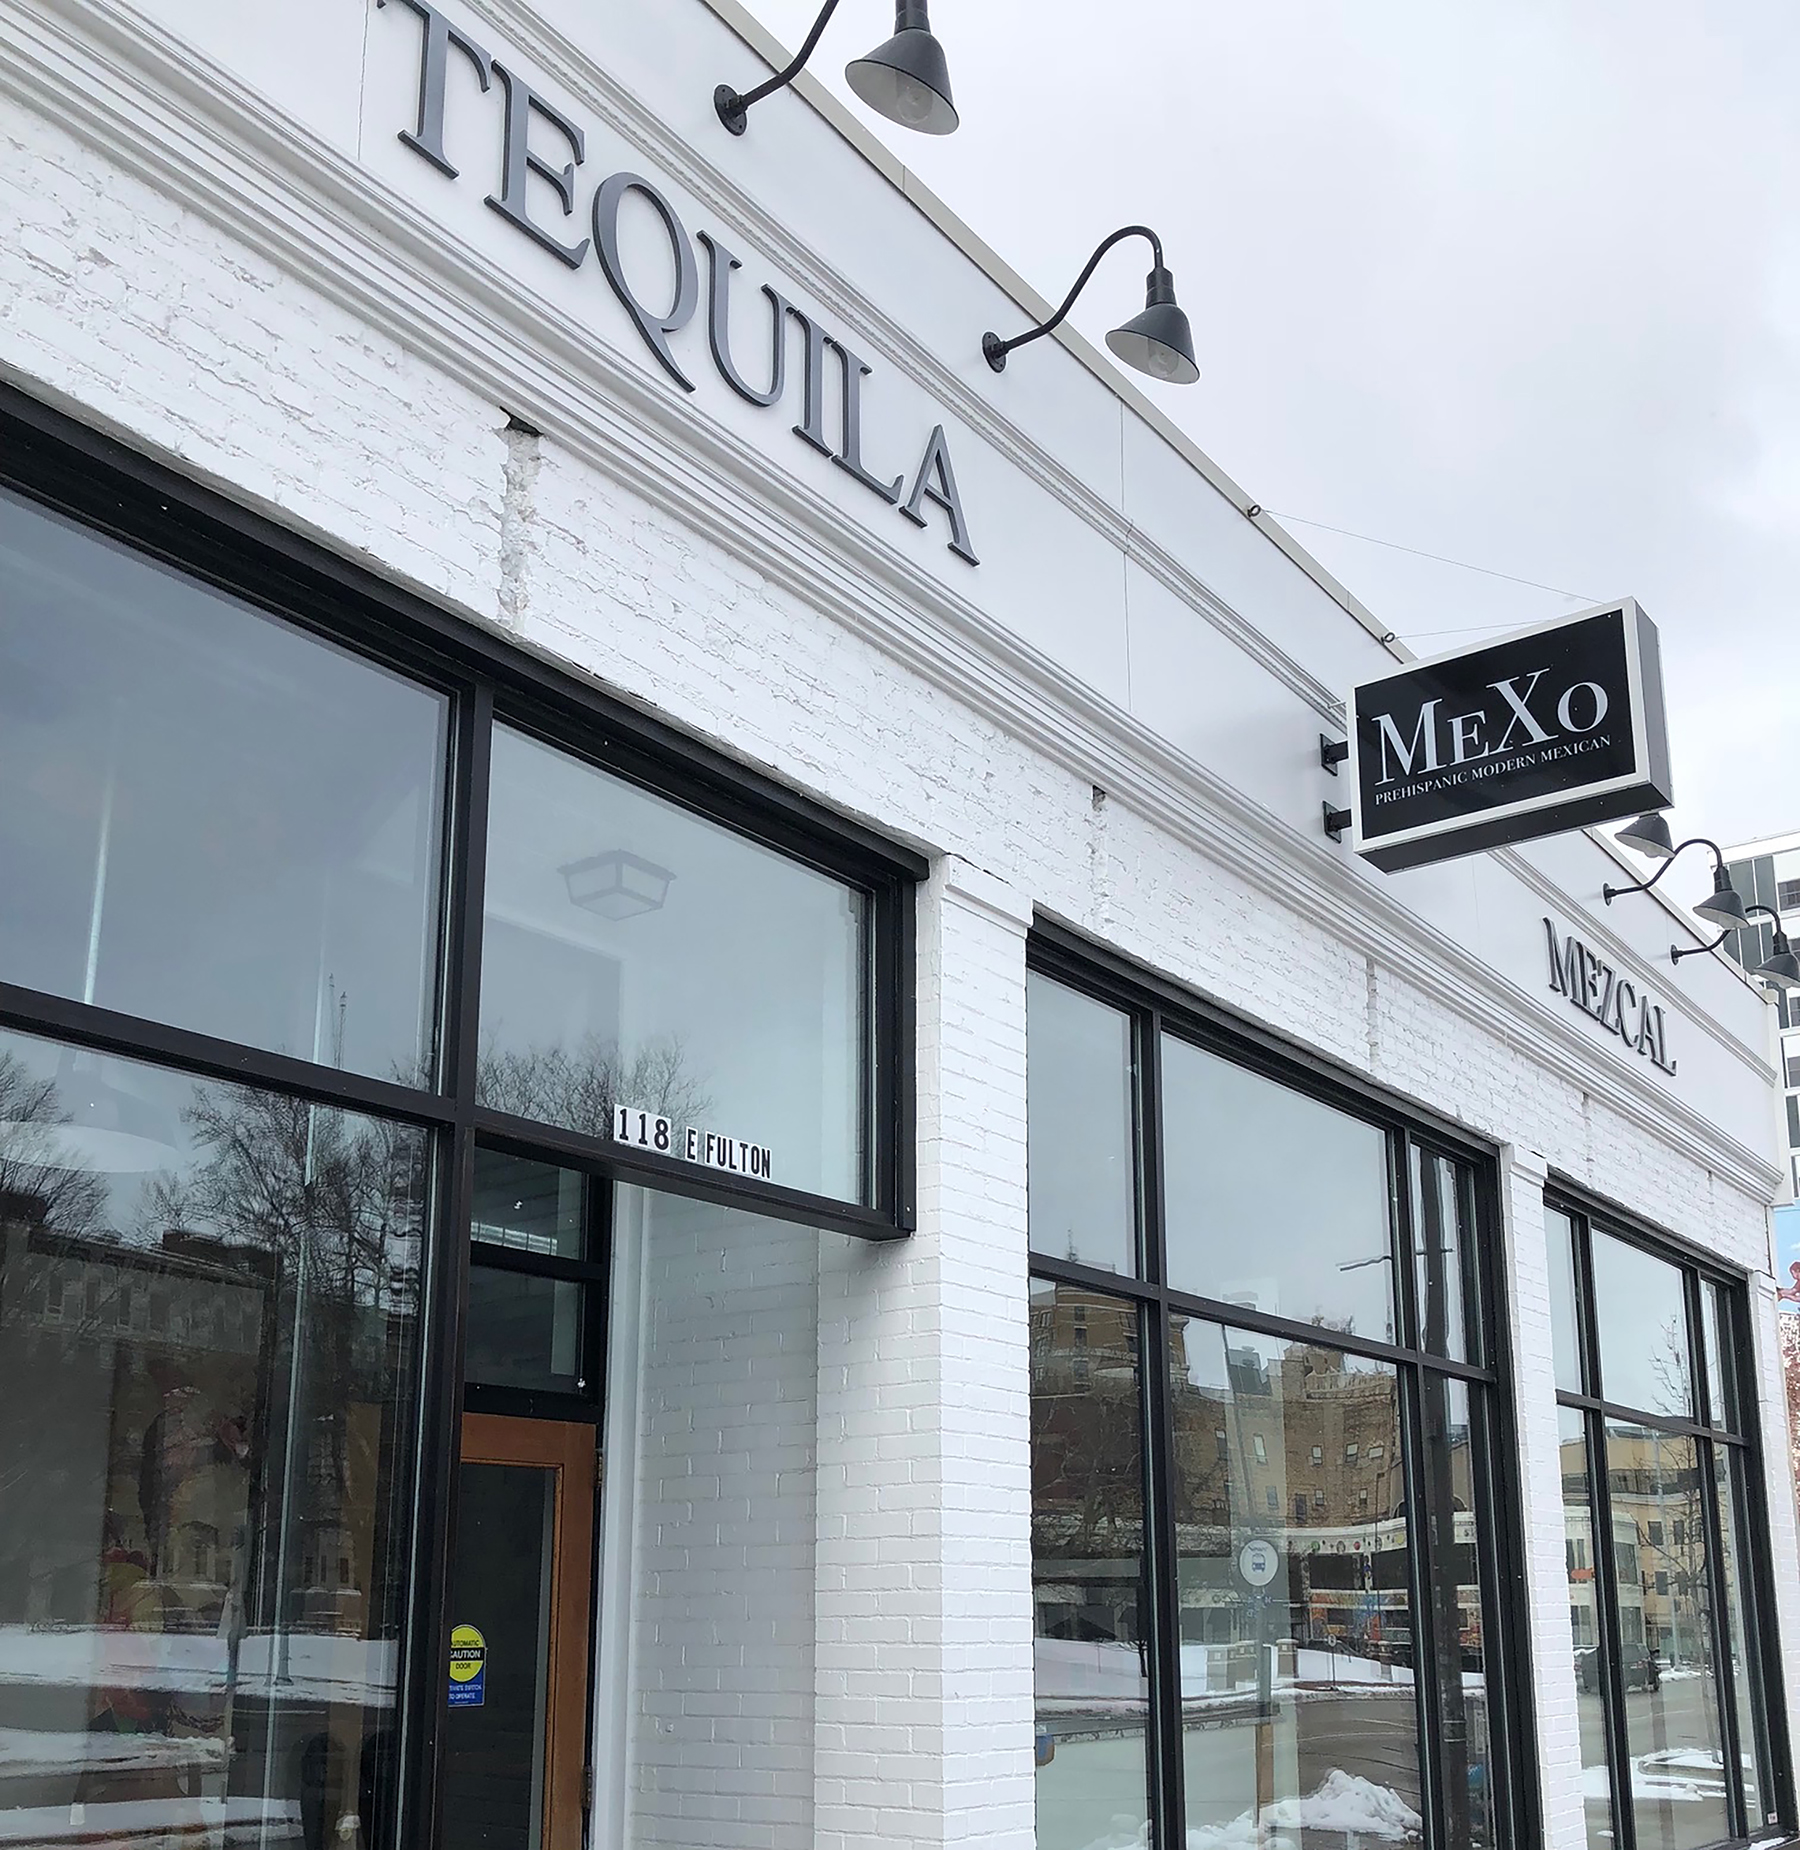 Come Enjoy The Best Modern Mexican Cuisine In Grand Rapids! -